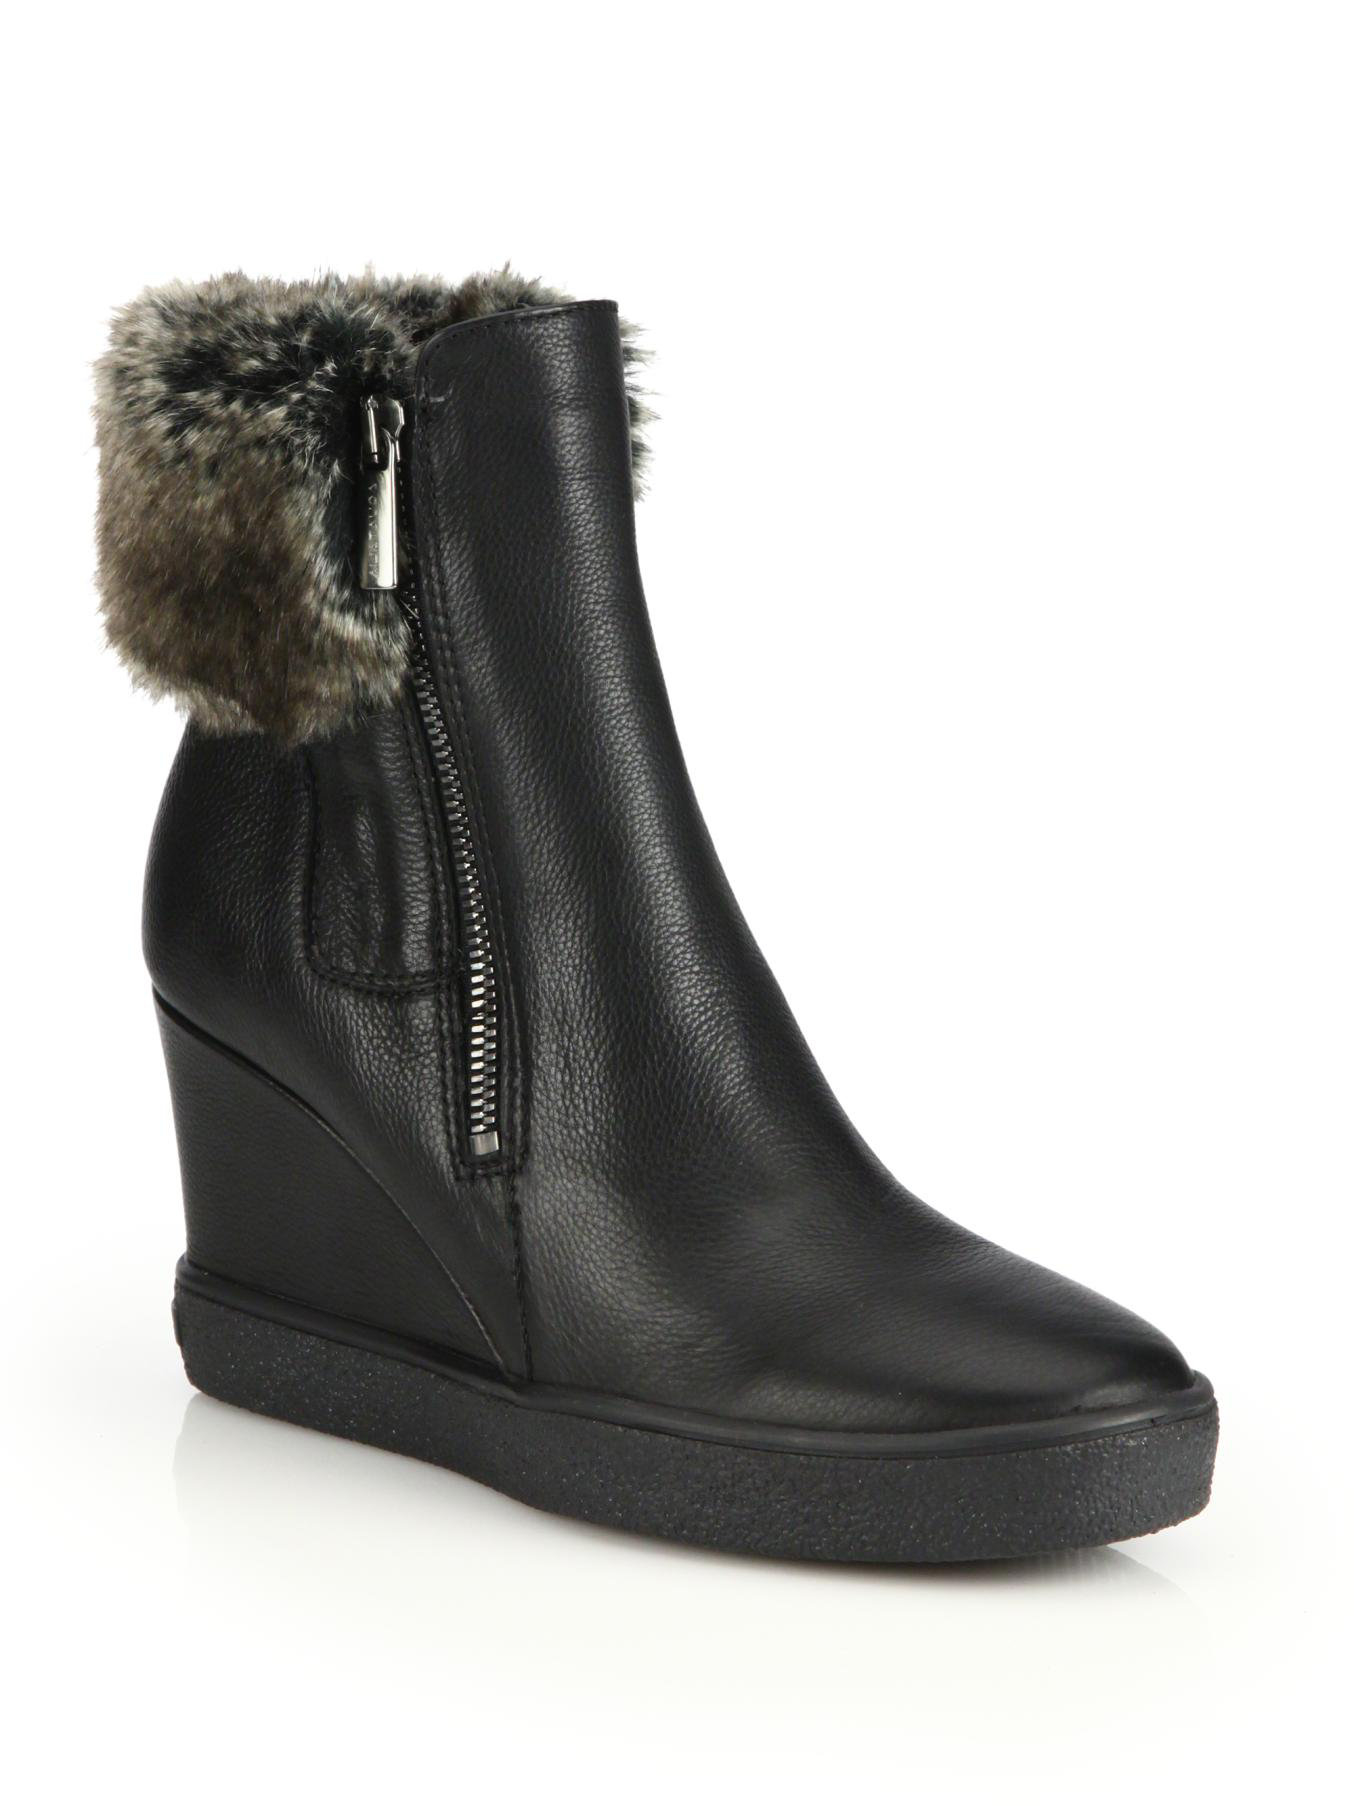 Find great deals on eBay for leather black wedge boots. Shop with confidence.